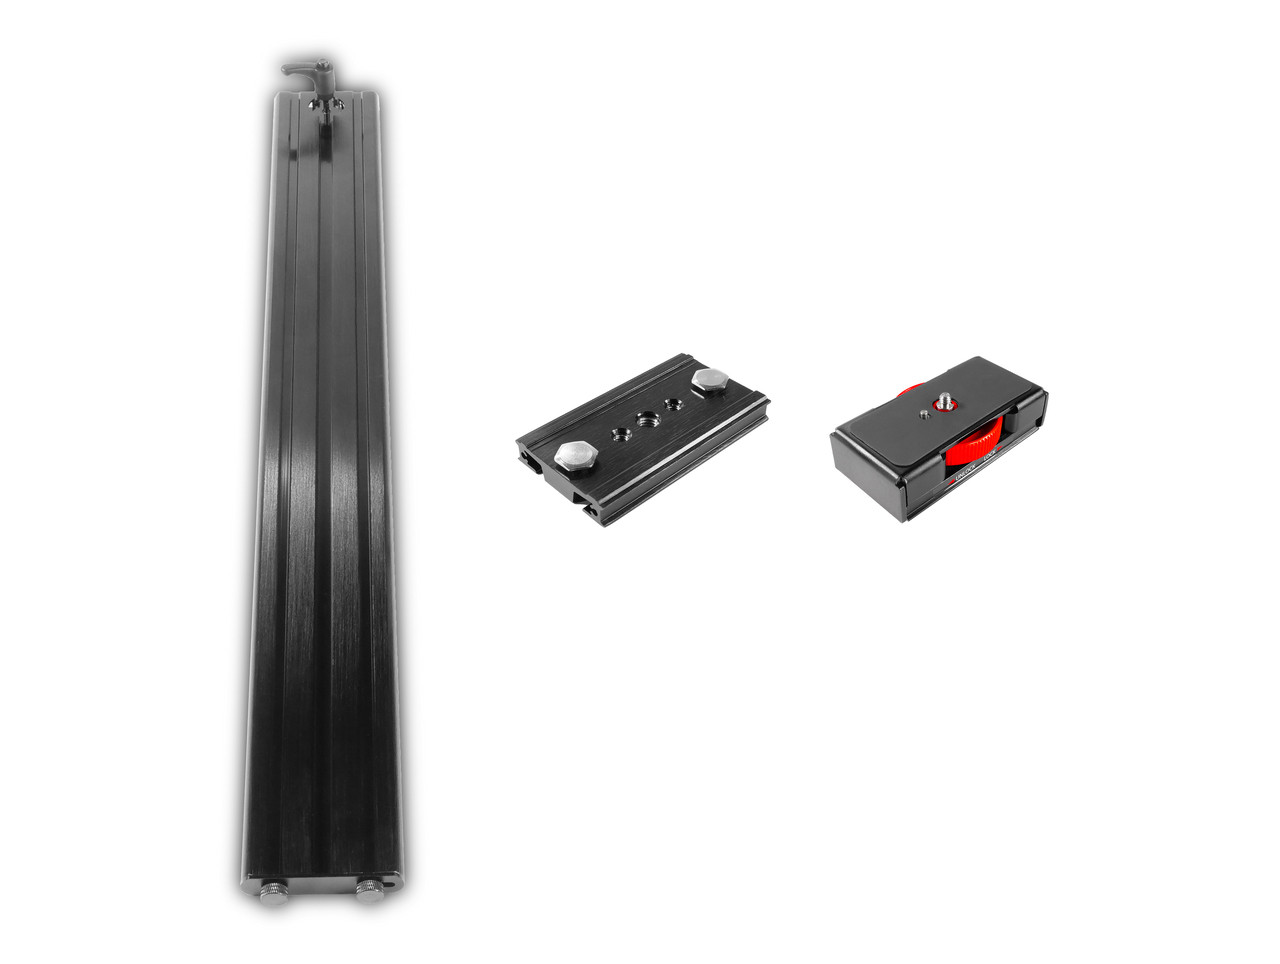 Plus Model Long Sled Add-on for plus models with LowBoy and Tripod Adapter Plate - International